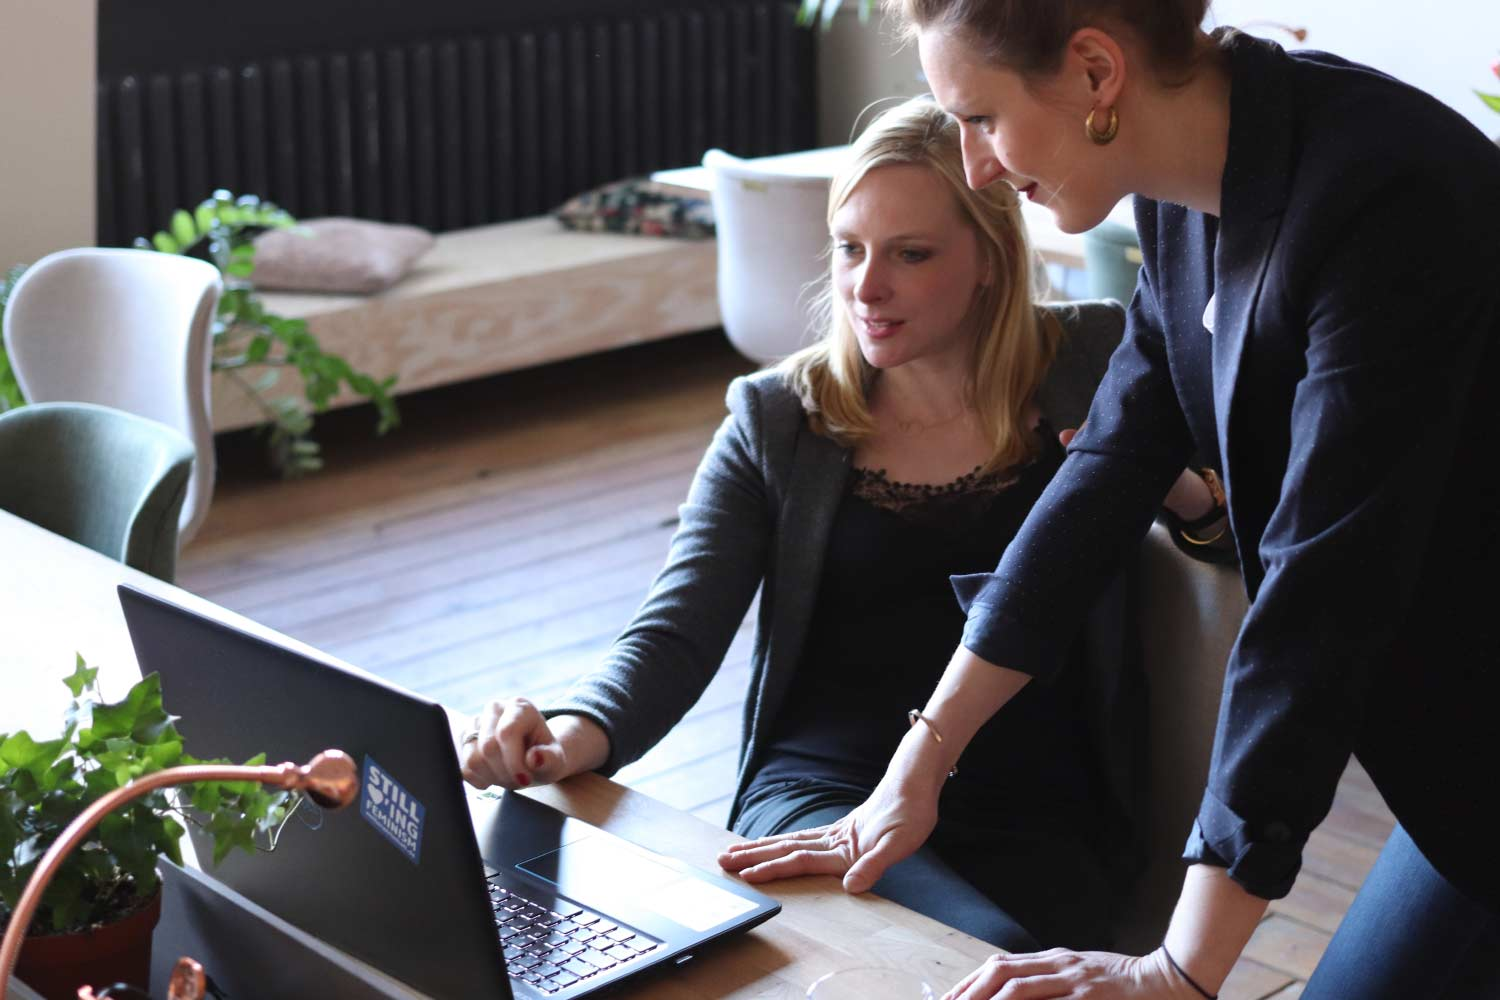 Two business-women discussing while one woman sits at a laptop and the other woman stands next to her and leans in to look at screen